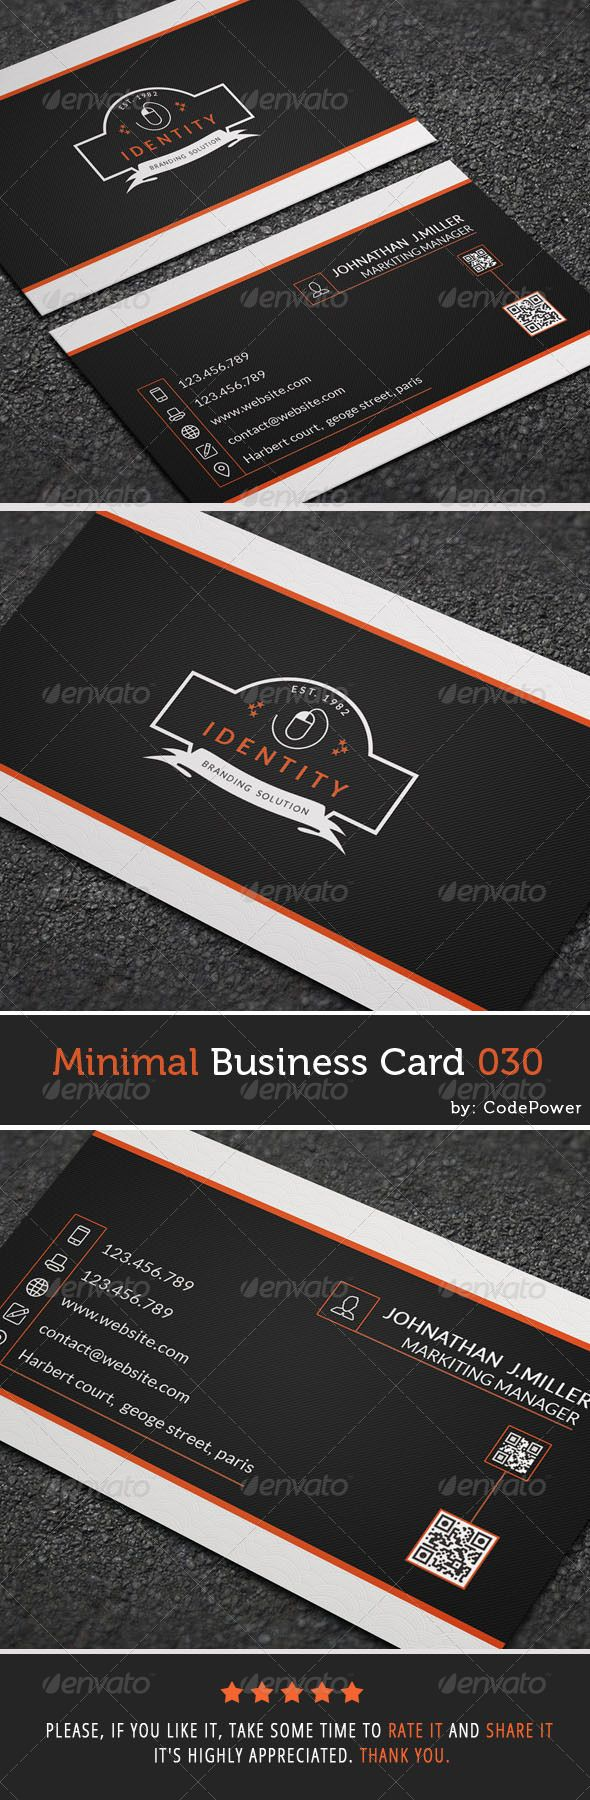 Minimal Business Card 030 - Corporate #Business #Cards Download here: https://graphicriver.net/item/minimal-business-card-030/7929736?ref=alena994